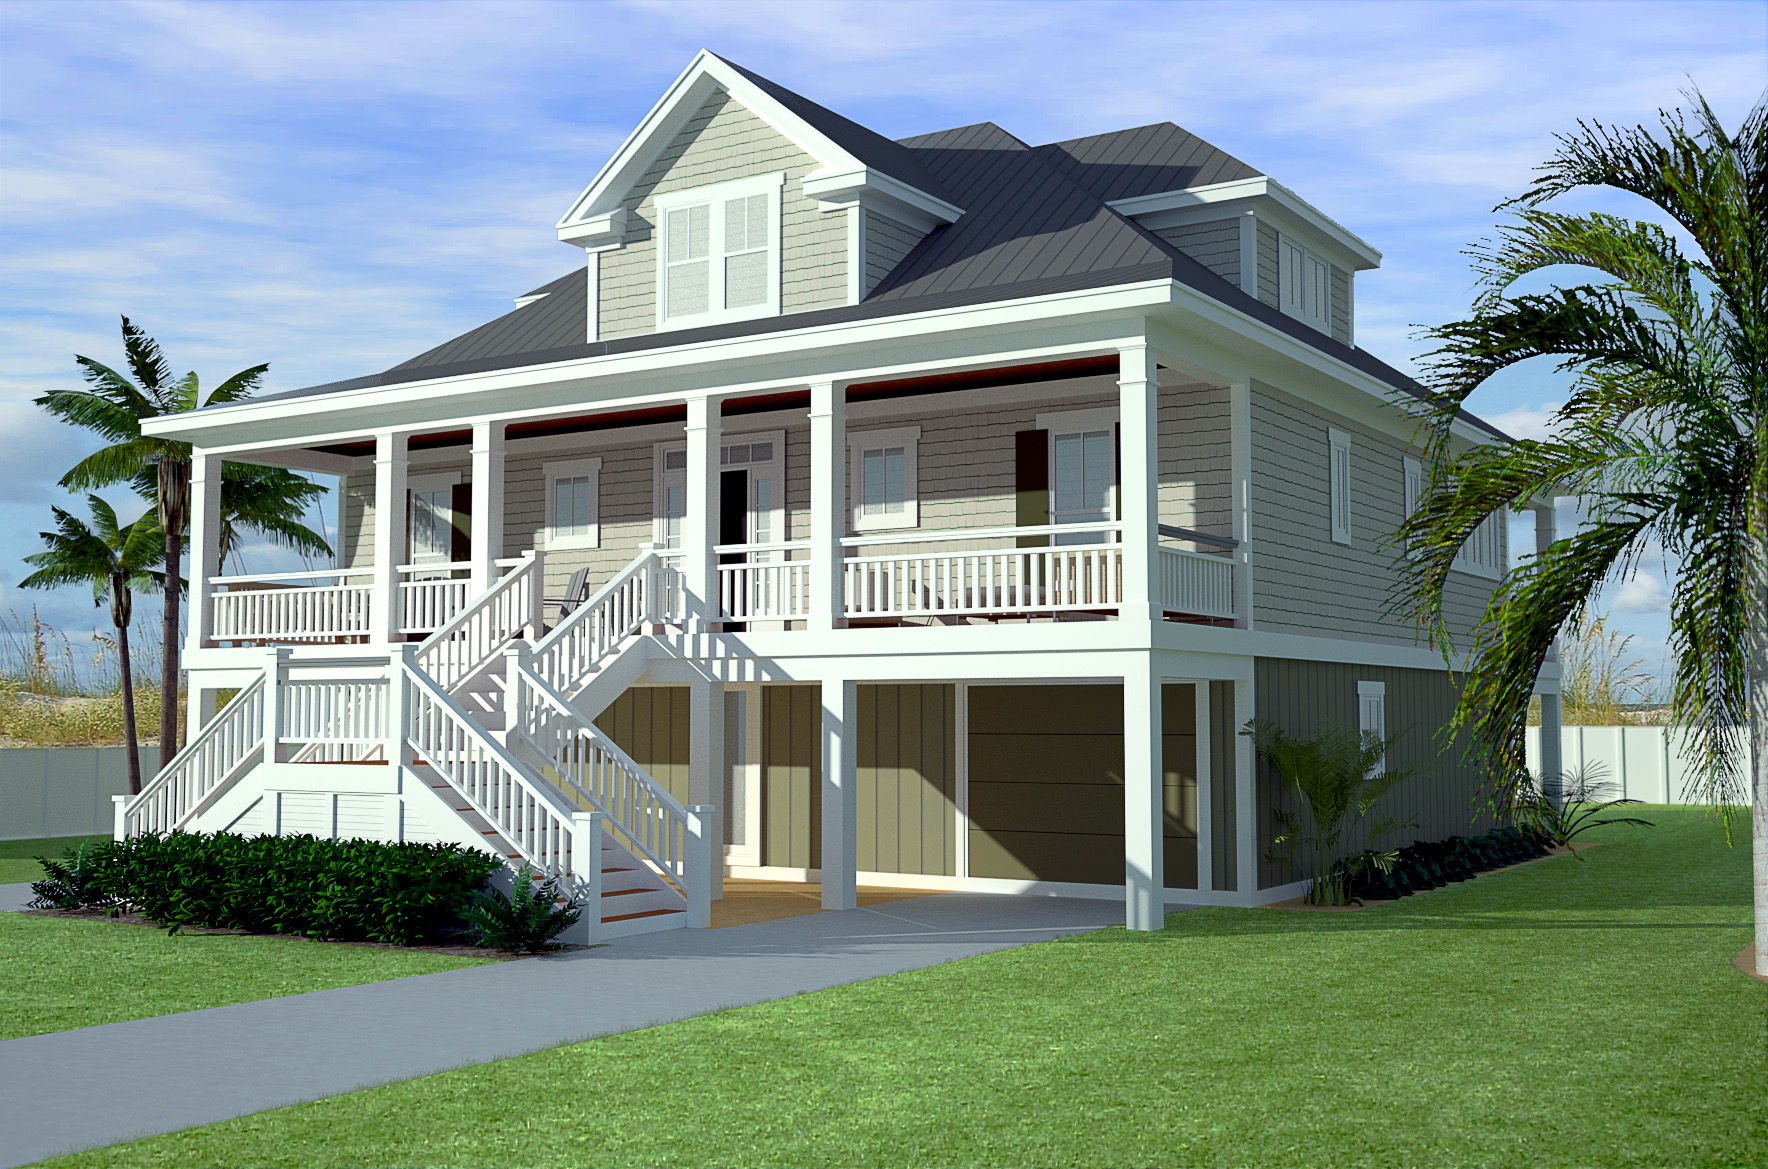 Stylish Low Country Home Plan 15062nc 1st Floor Master